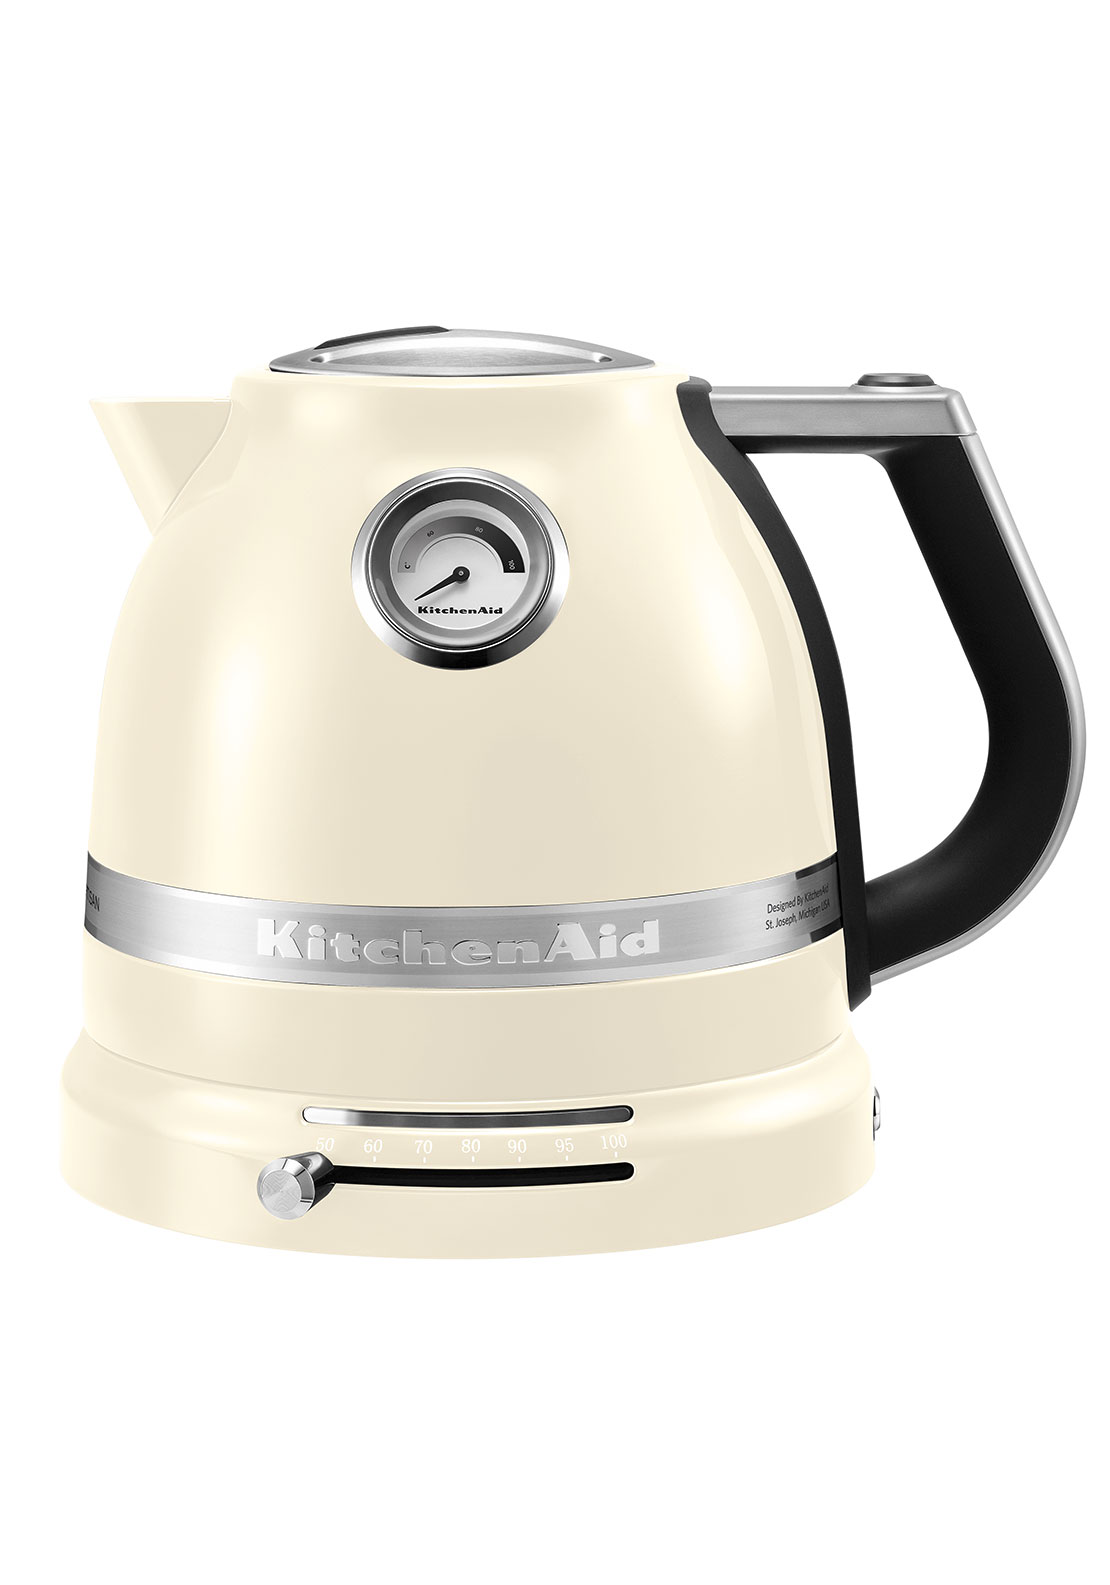 KitchenAid Artisan Kettle, Almond Cream 1.5L